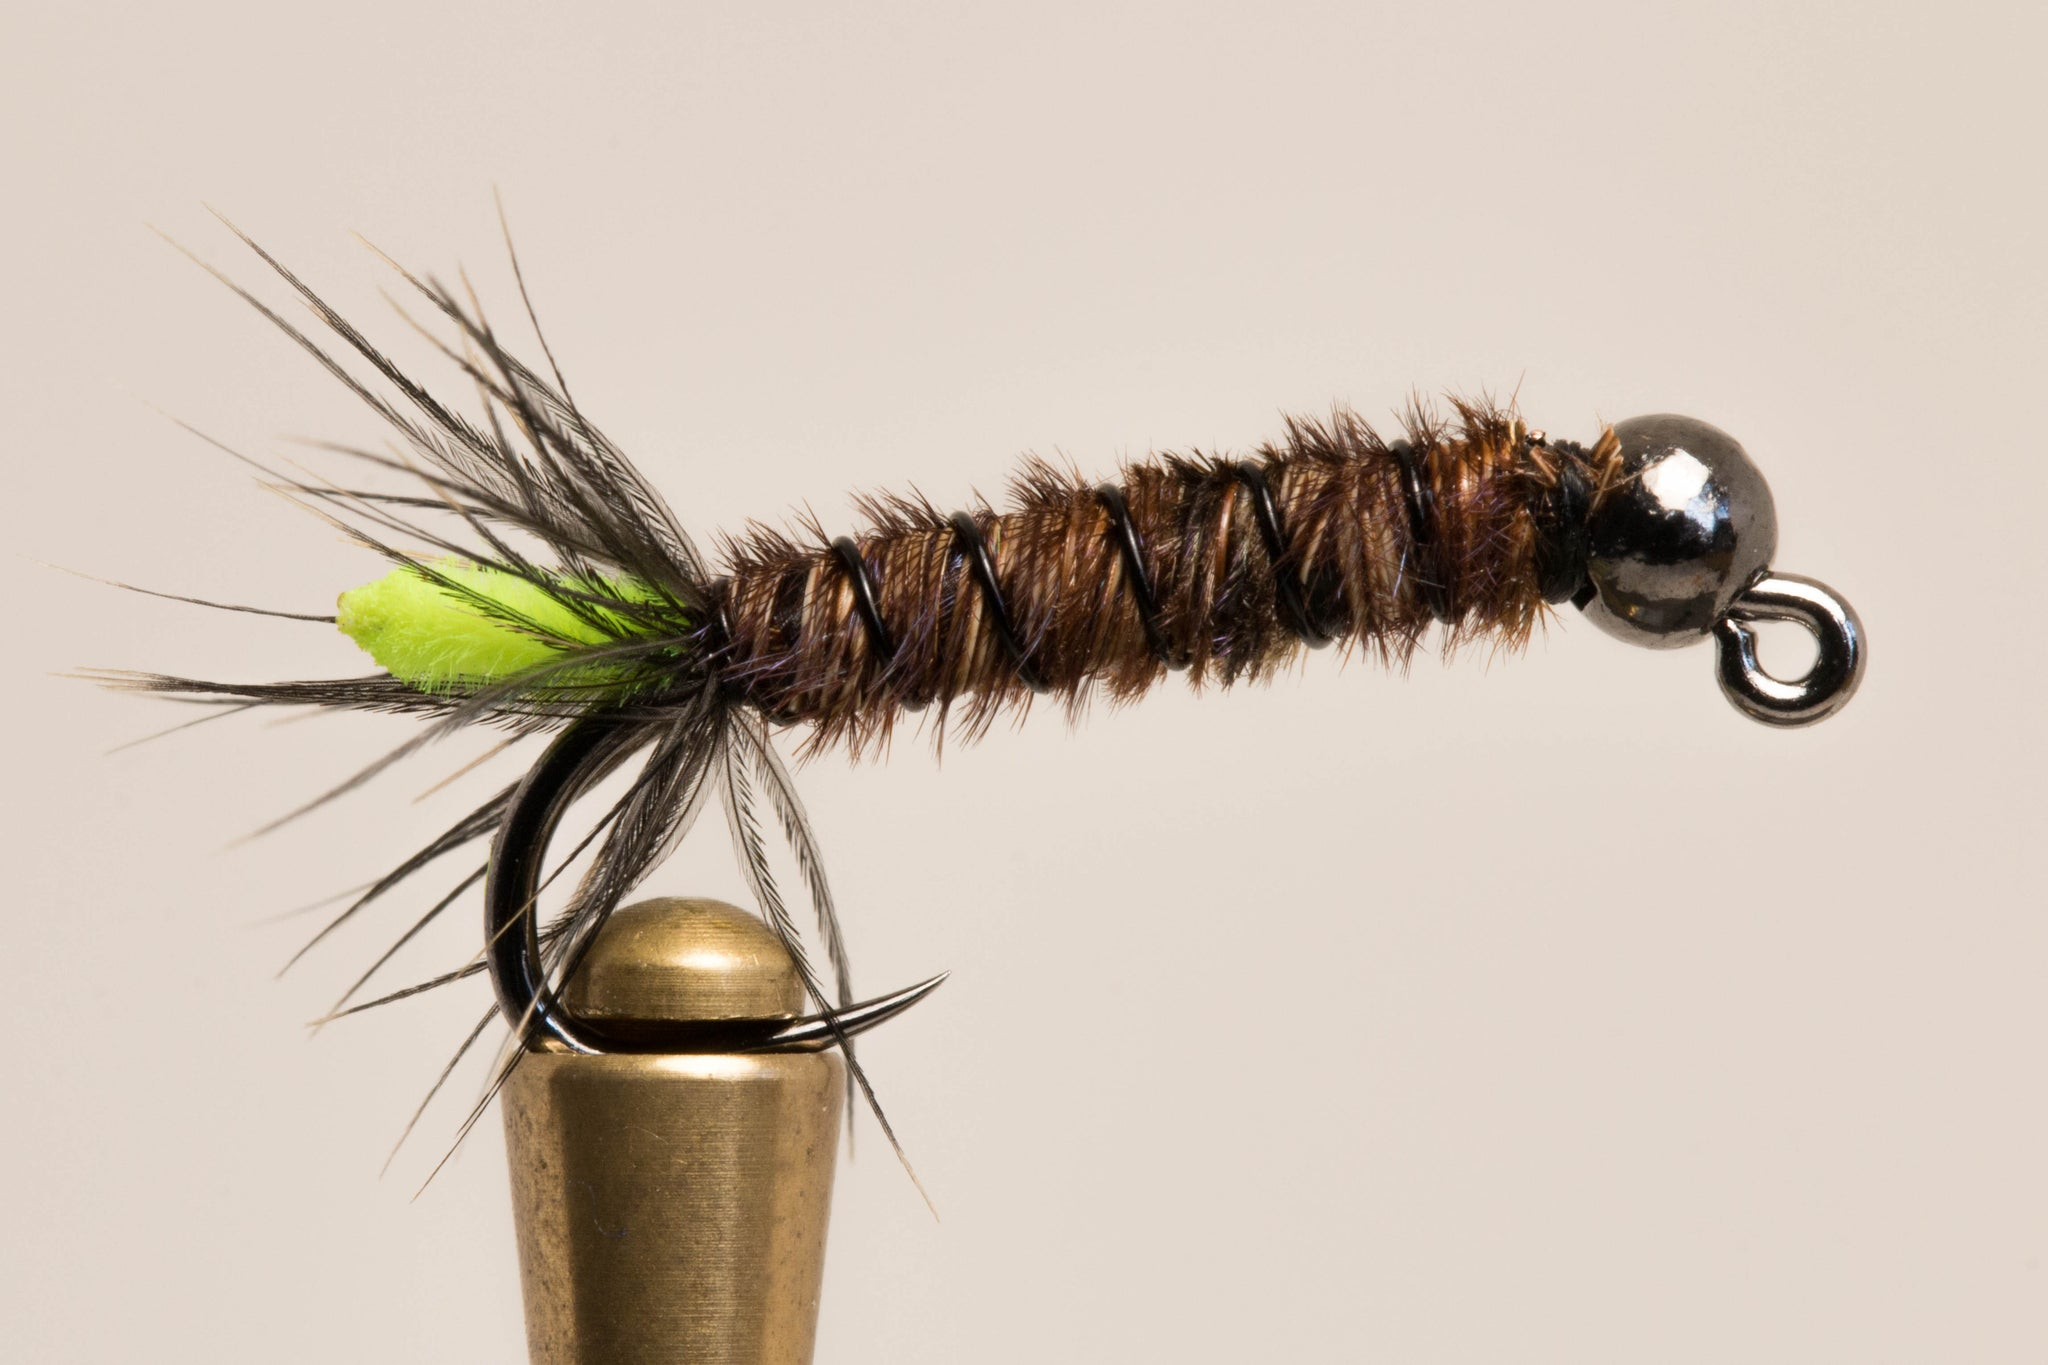 Cased Caddis